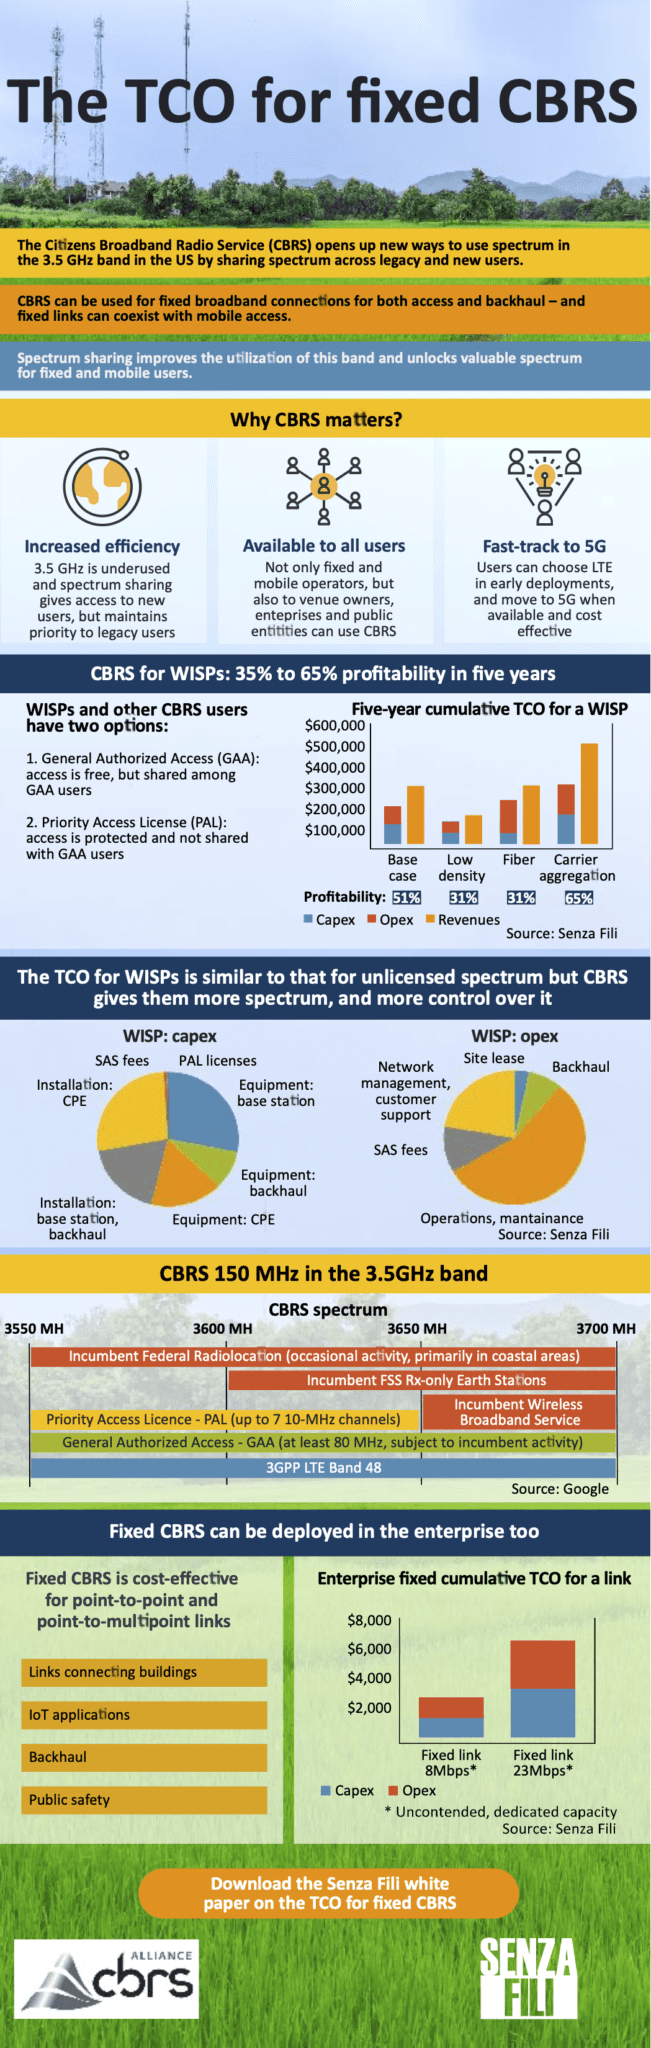 TCO of Fixed Wireless Access Networks in CBRS for WISPs